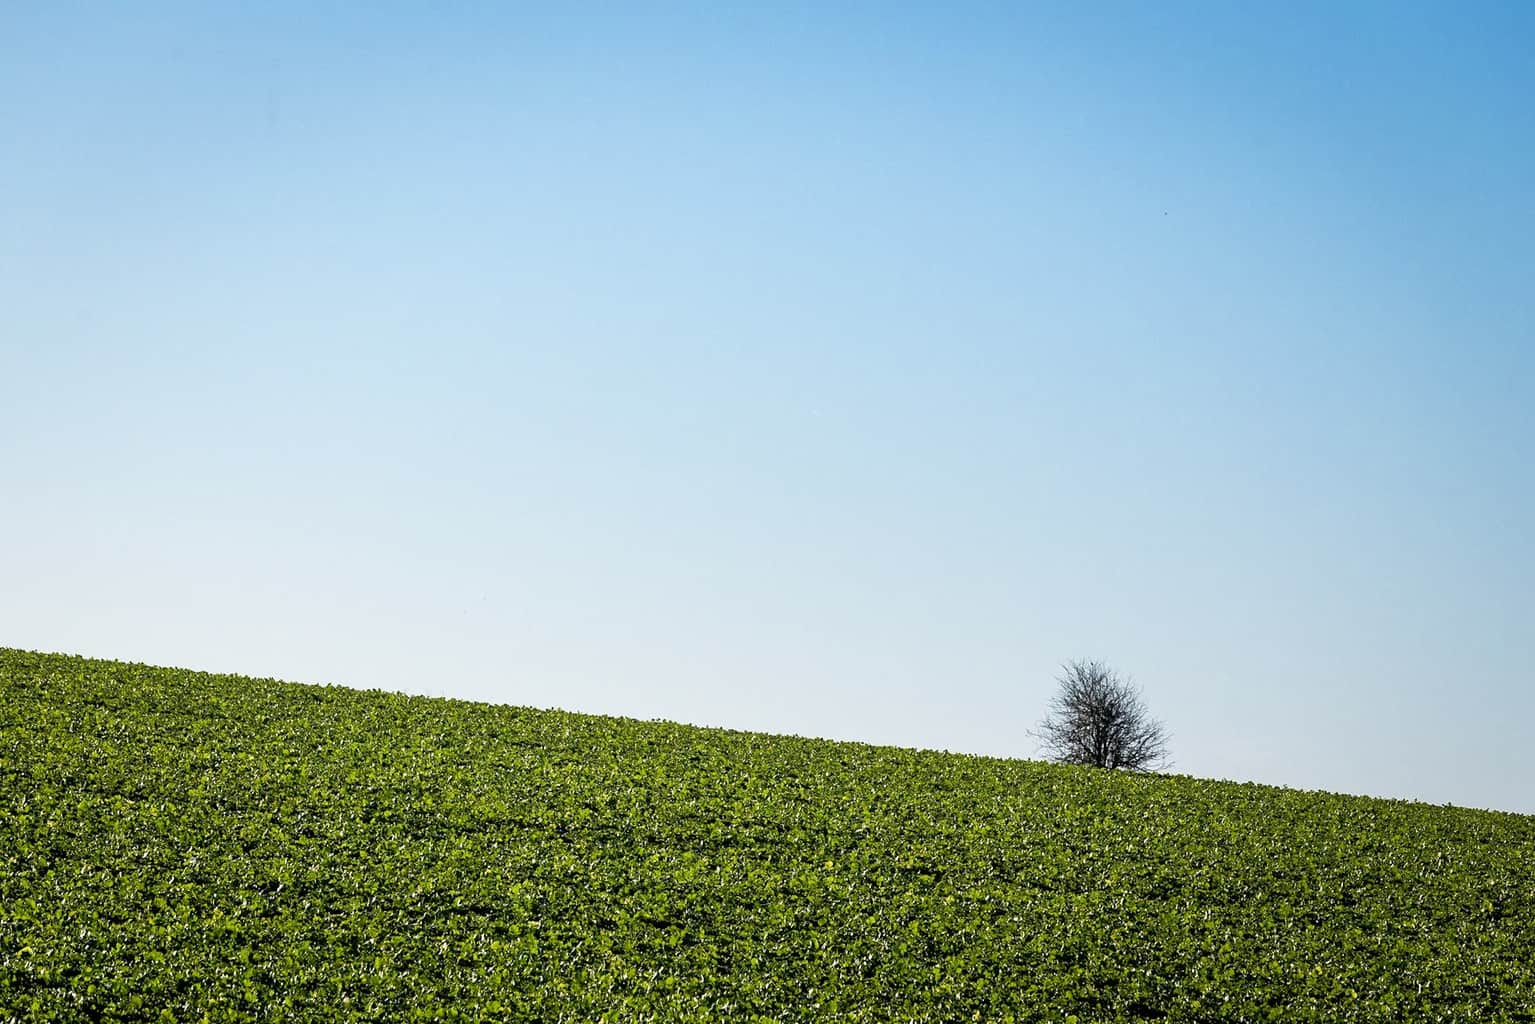 Field in Dorset - the isolation of the tree on the horizon